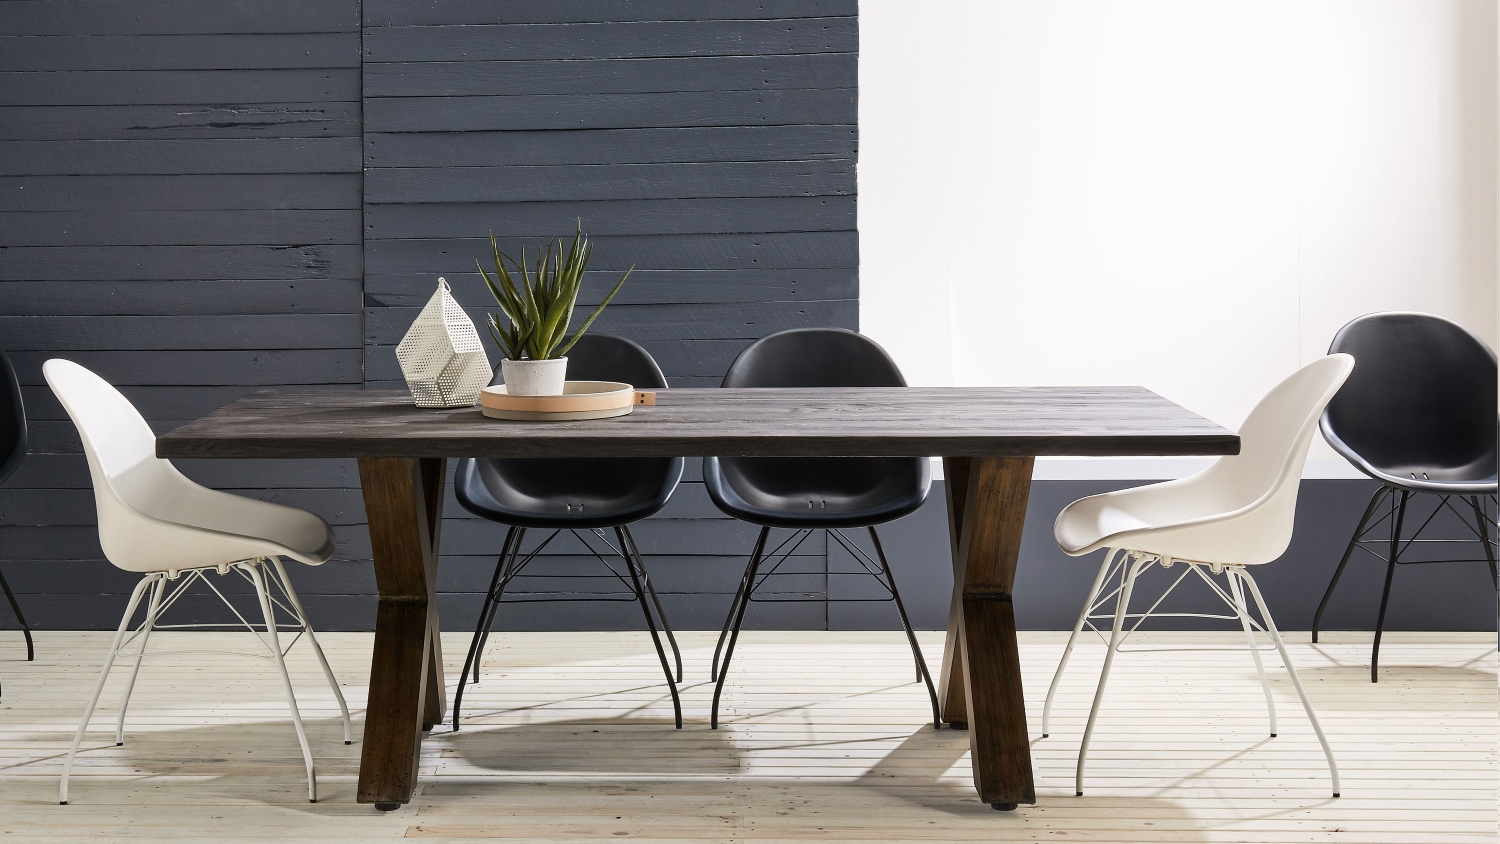 Firenze Outdoor Dining Table Domayne